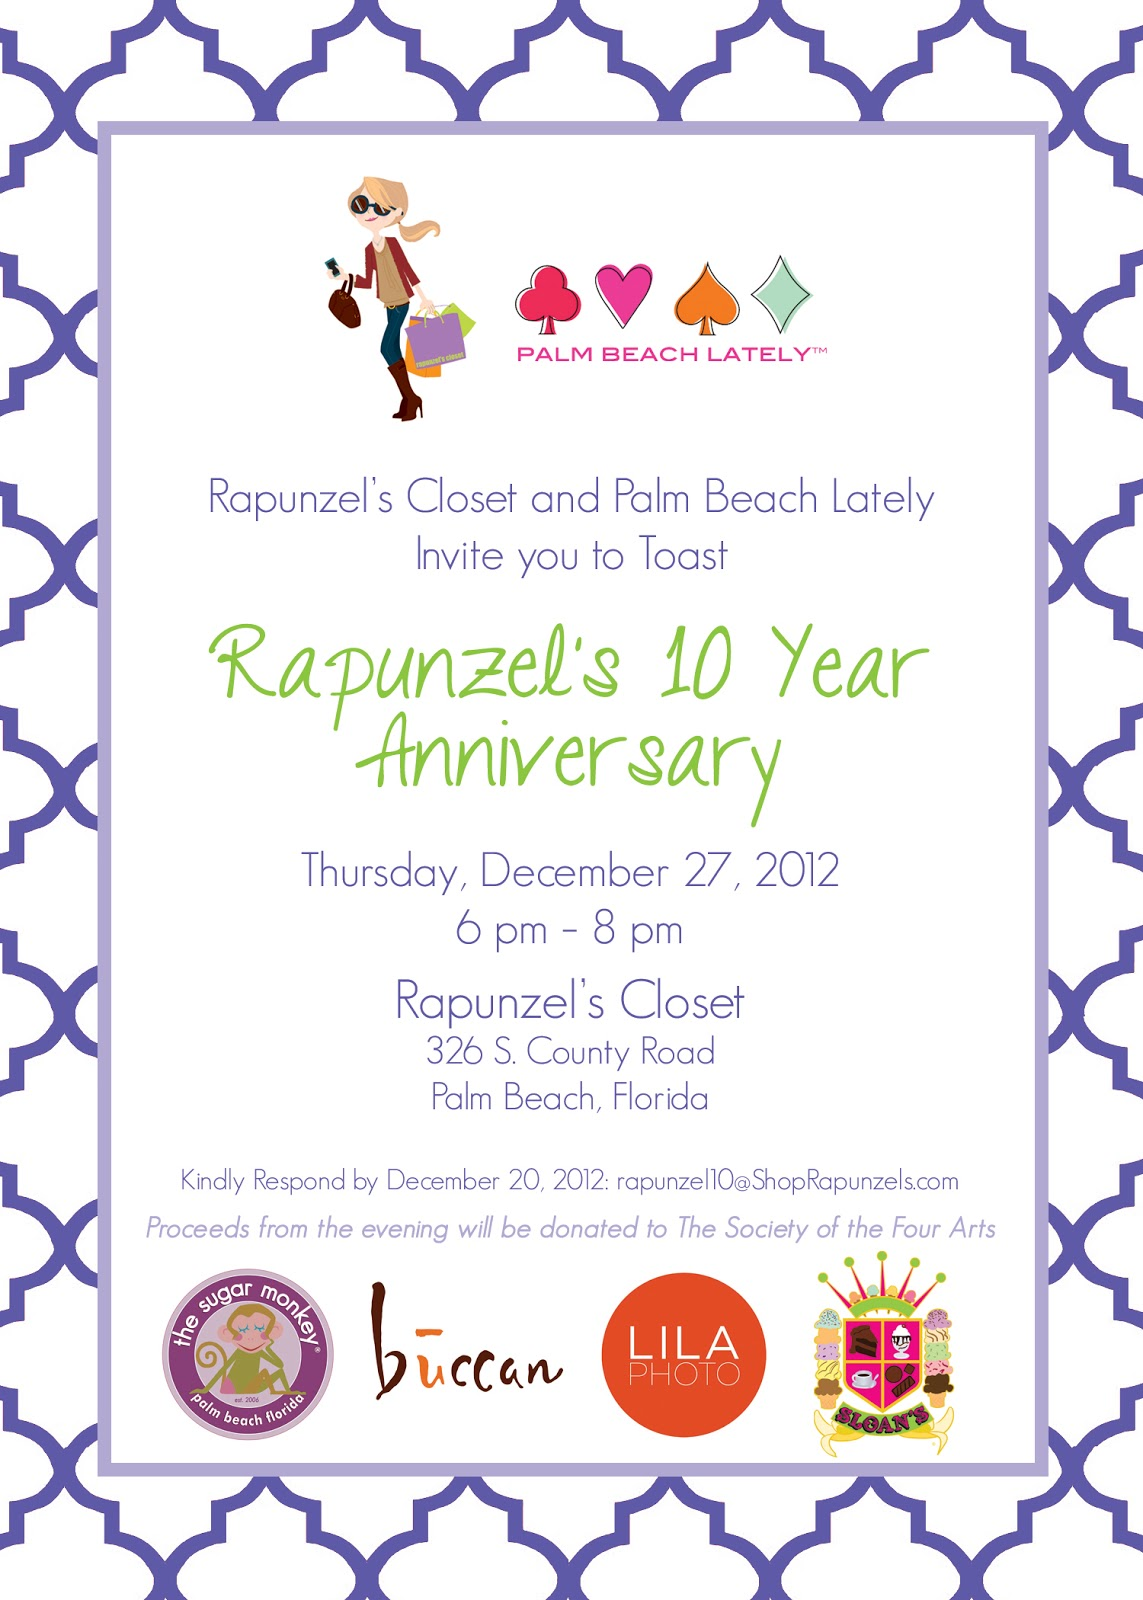 Youre Invited Rapunzels 10 Year Anniversary Event Palm Beach Lately